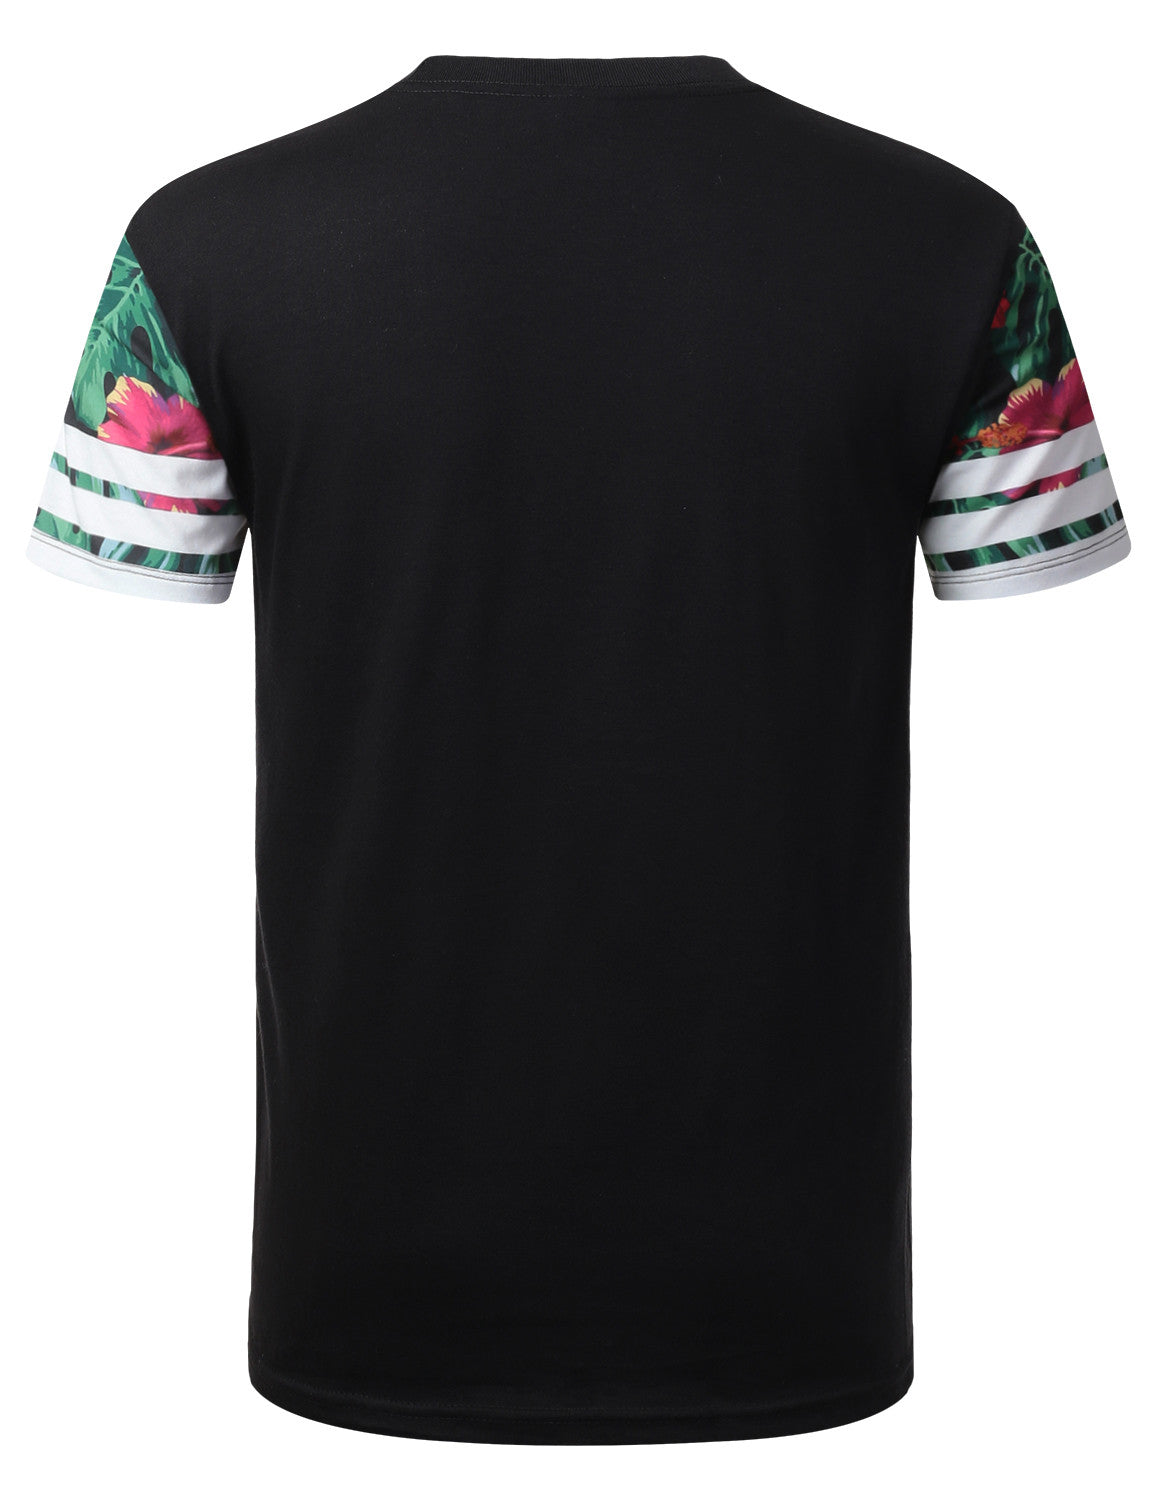 BLACK Superior 23 Floral Crewneck Tshirt - URBANCREWS